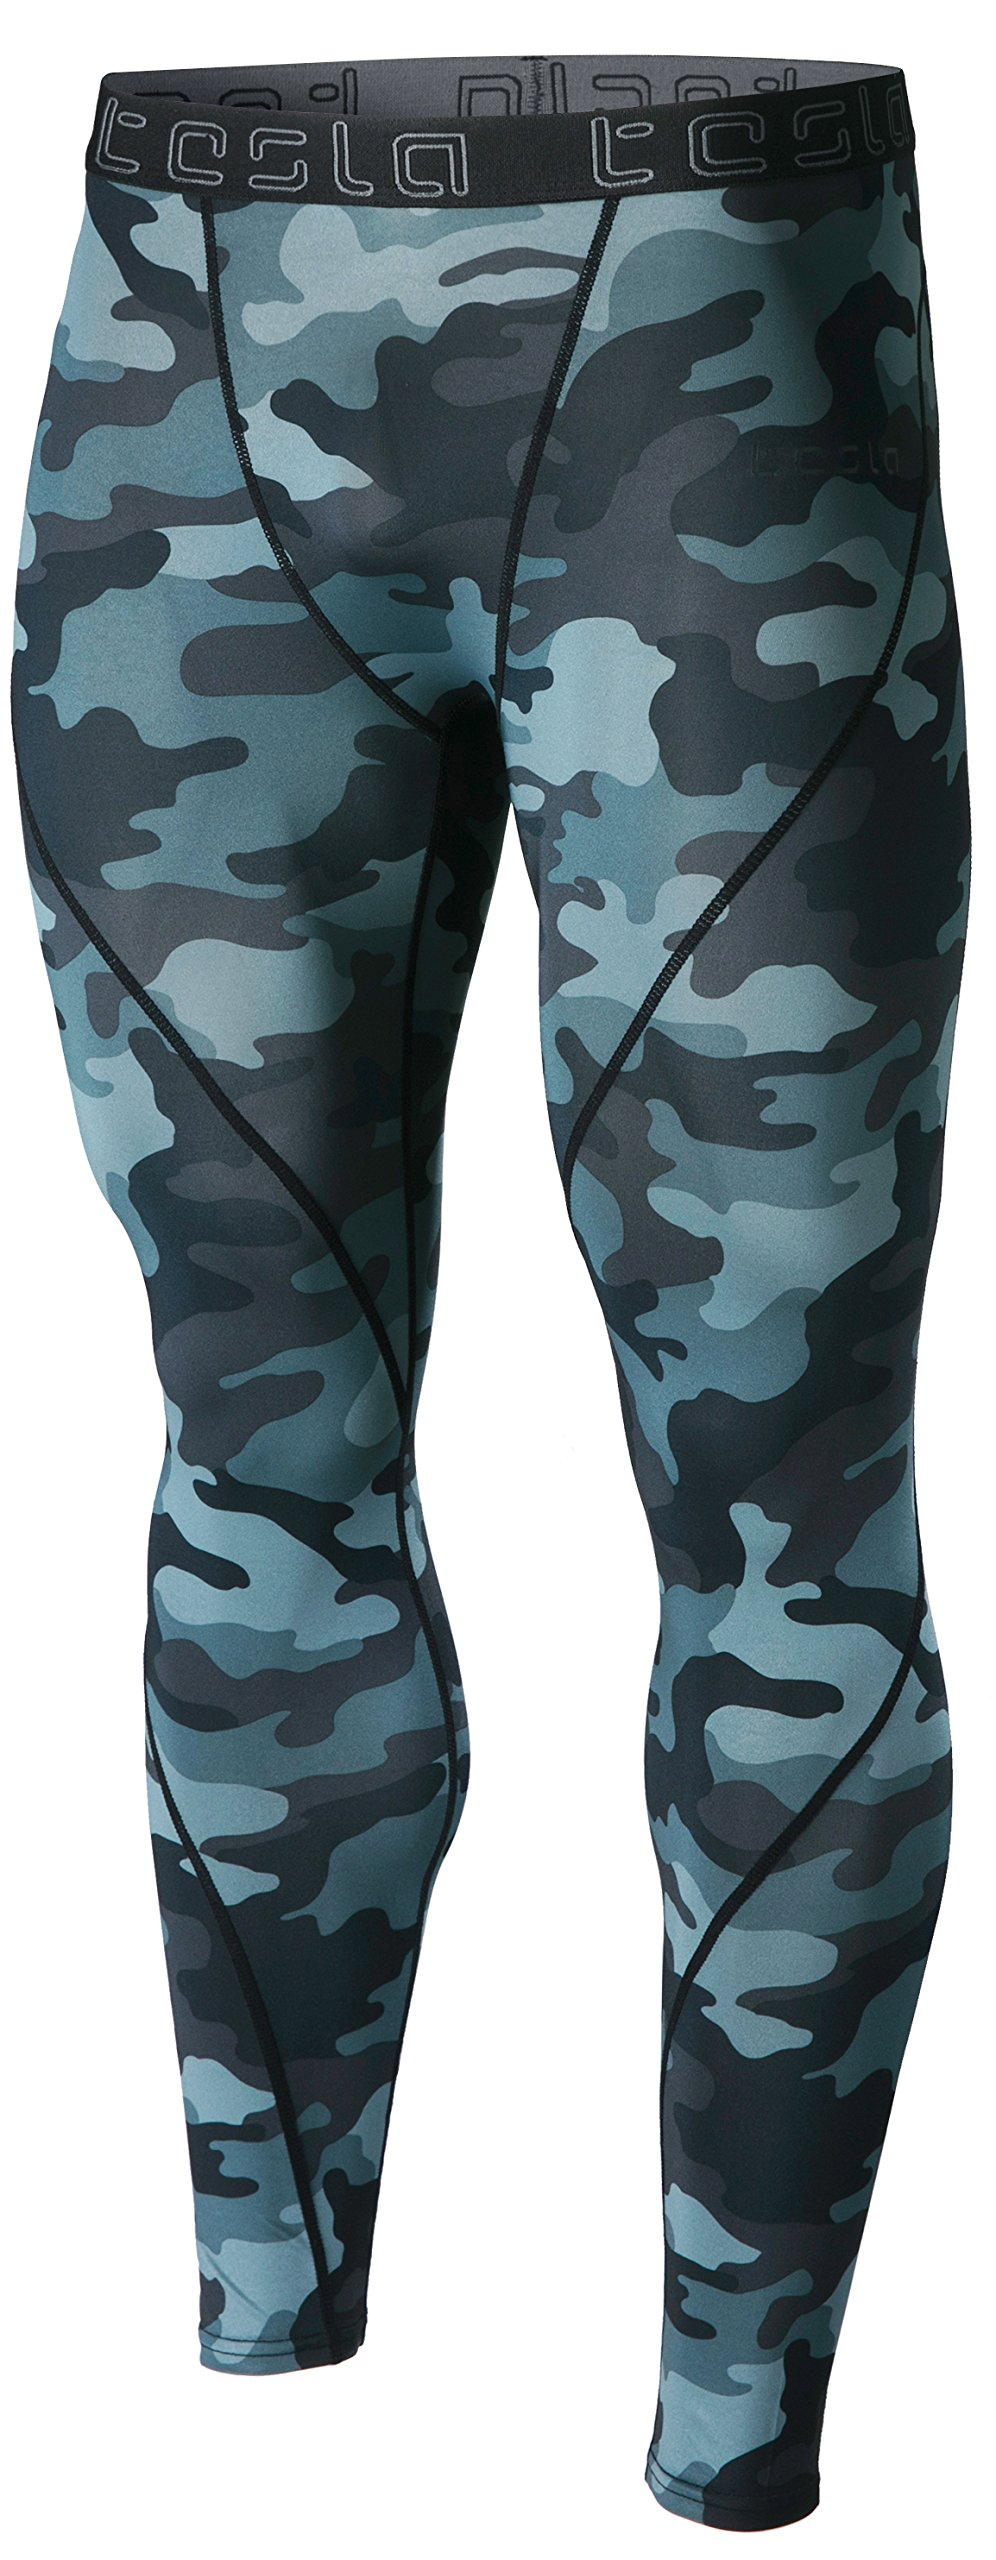 TSLA Men's Compression Pants Running Baselayer Cool Dry Sports Tights, Athletic(mup19) - Camo Dark Grey, Medium by TSLA